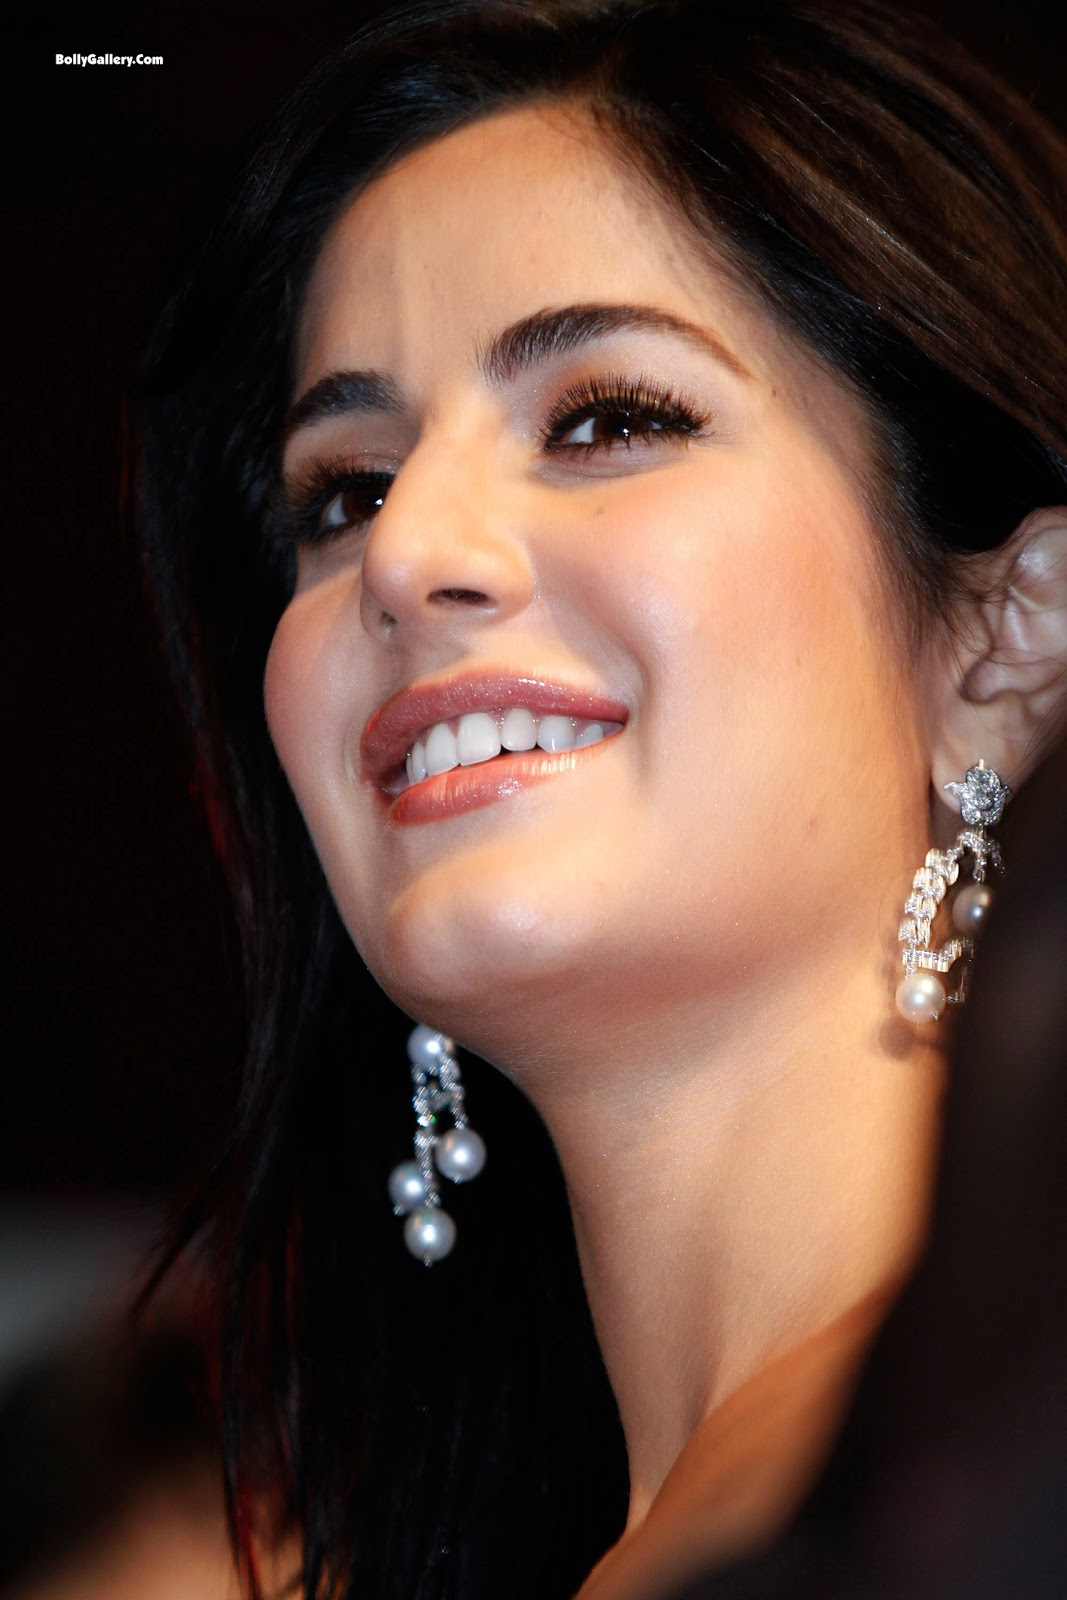 http://3.bp.blogspot.com/-OtosgStcJZk/Tt-rb_cP1YI/AAAAAAAADEc/mZb_vpoOvow/s1600/Girl+Hairstyle%252C+Photo+Gallery%252C+Katrina+Kaif+Hairstyles%252C+Celebrity+Katrina+Kaif+Hairstyles%252C+Katrina+Kaif+Hairstyles+Photo%252C+Latest+Katrina+Kaif+Hairstyles%252C+Katrina+Kaif+Hairstyles+Cutting%25281%2529.jpg